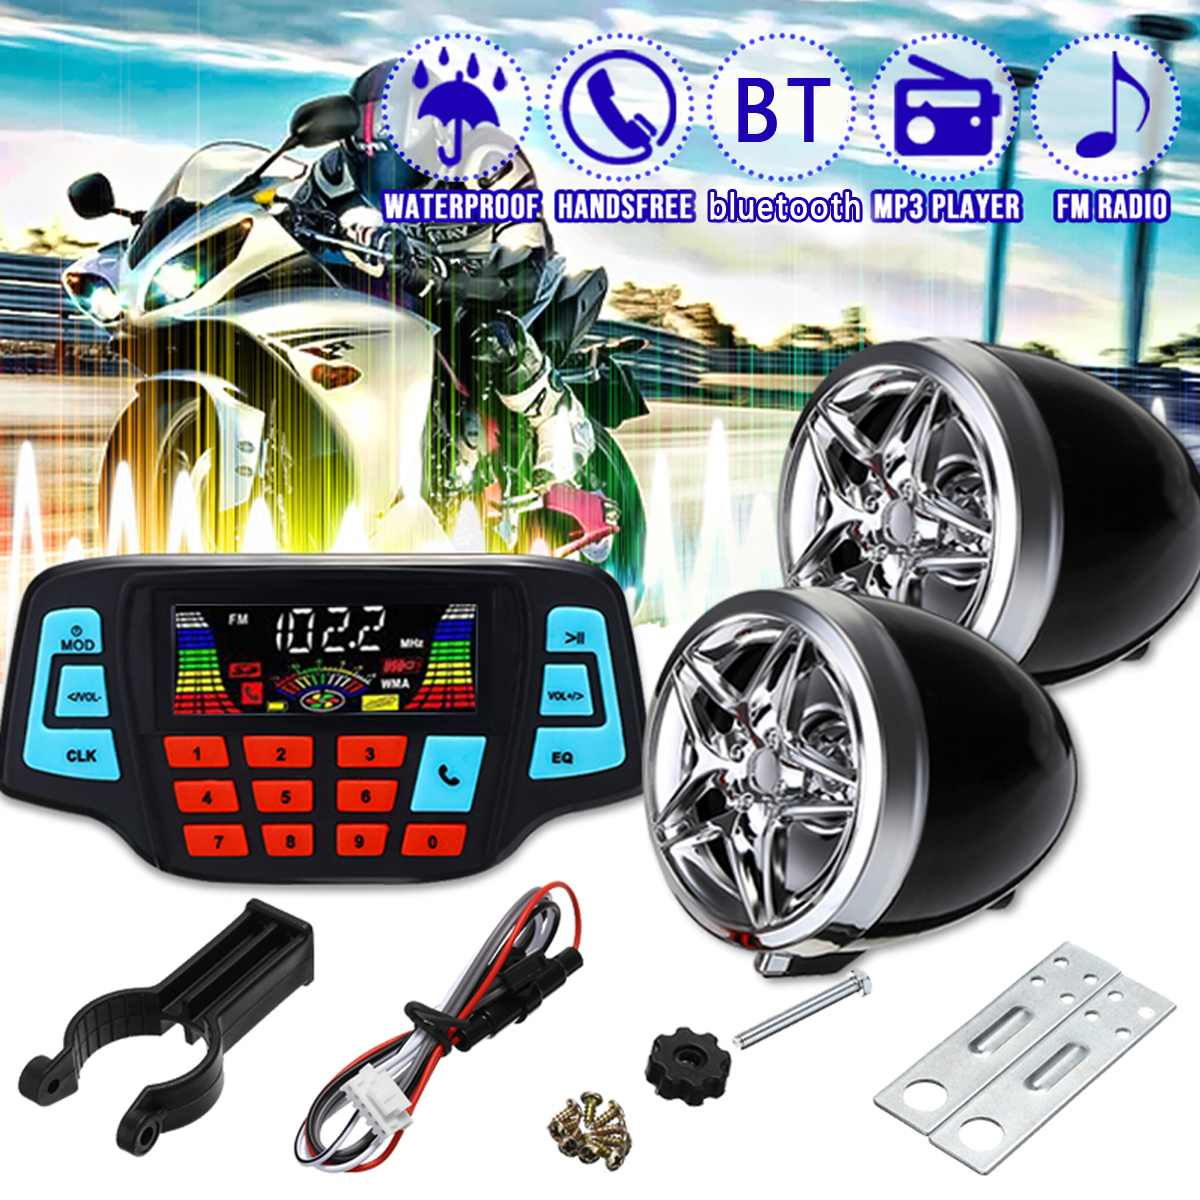 Motorcycle Waterproof MP3 Speakers Motor Handlebar Audio System USB TF Bluetooth FM Radio Built-in Microphone Car Accessories